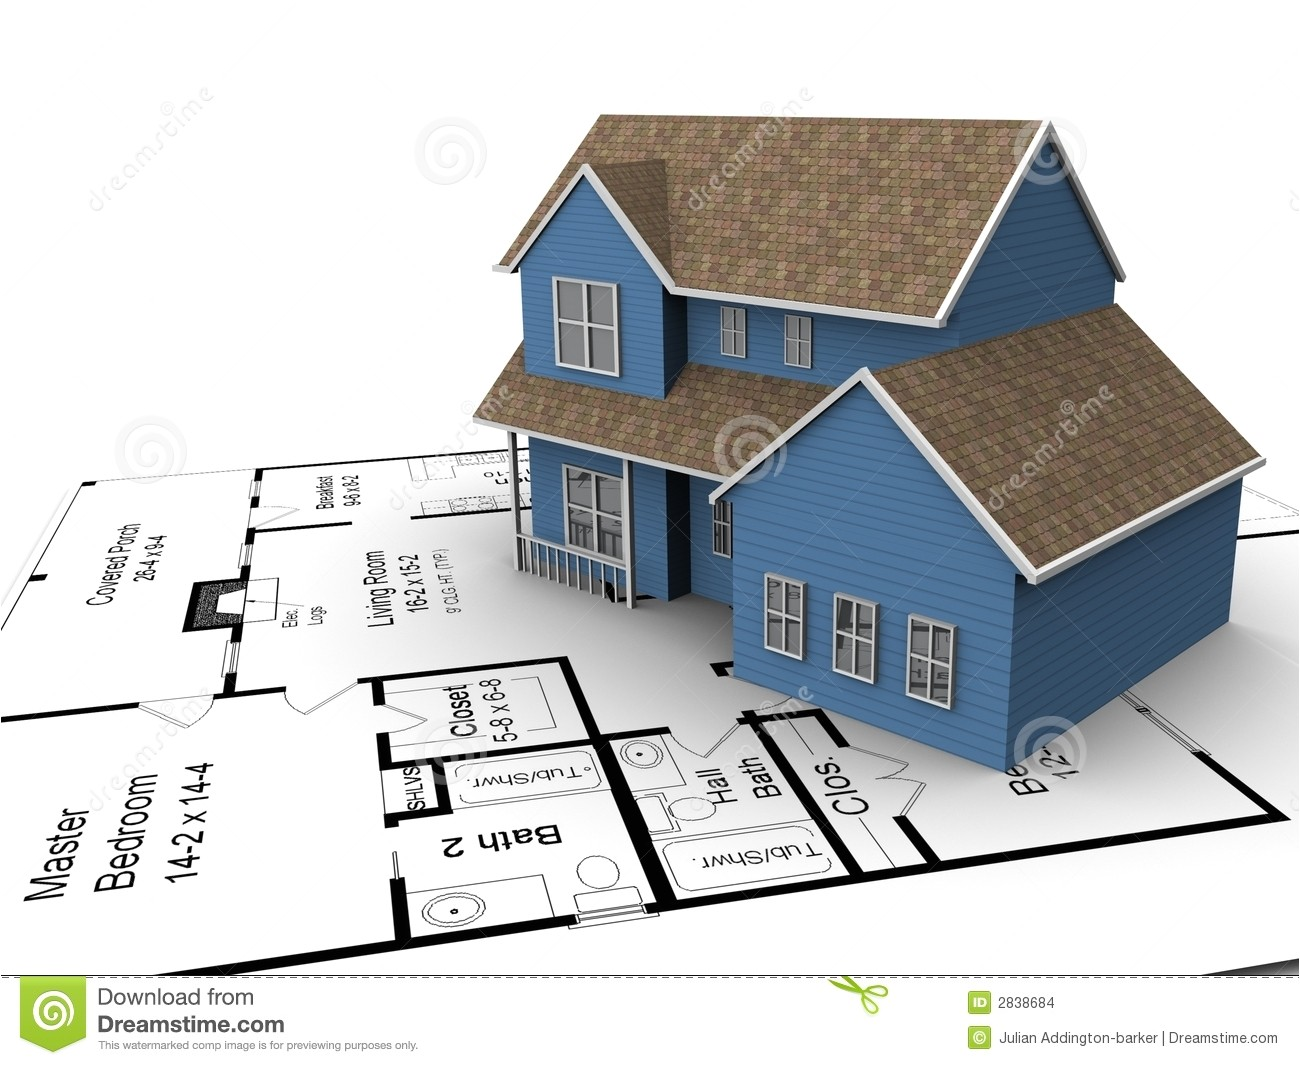 stock images new house plans image2838684